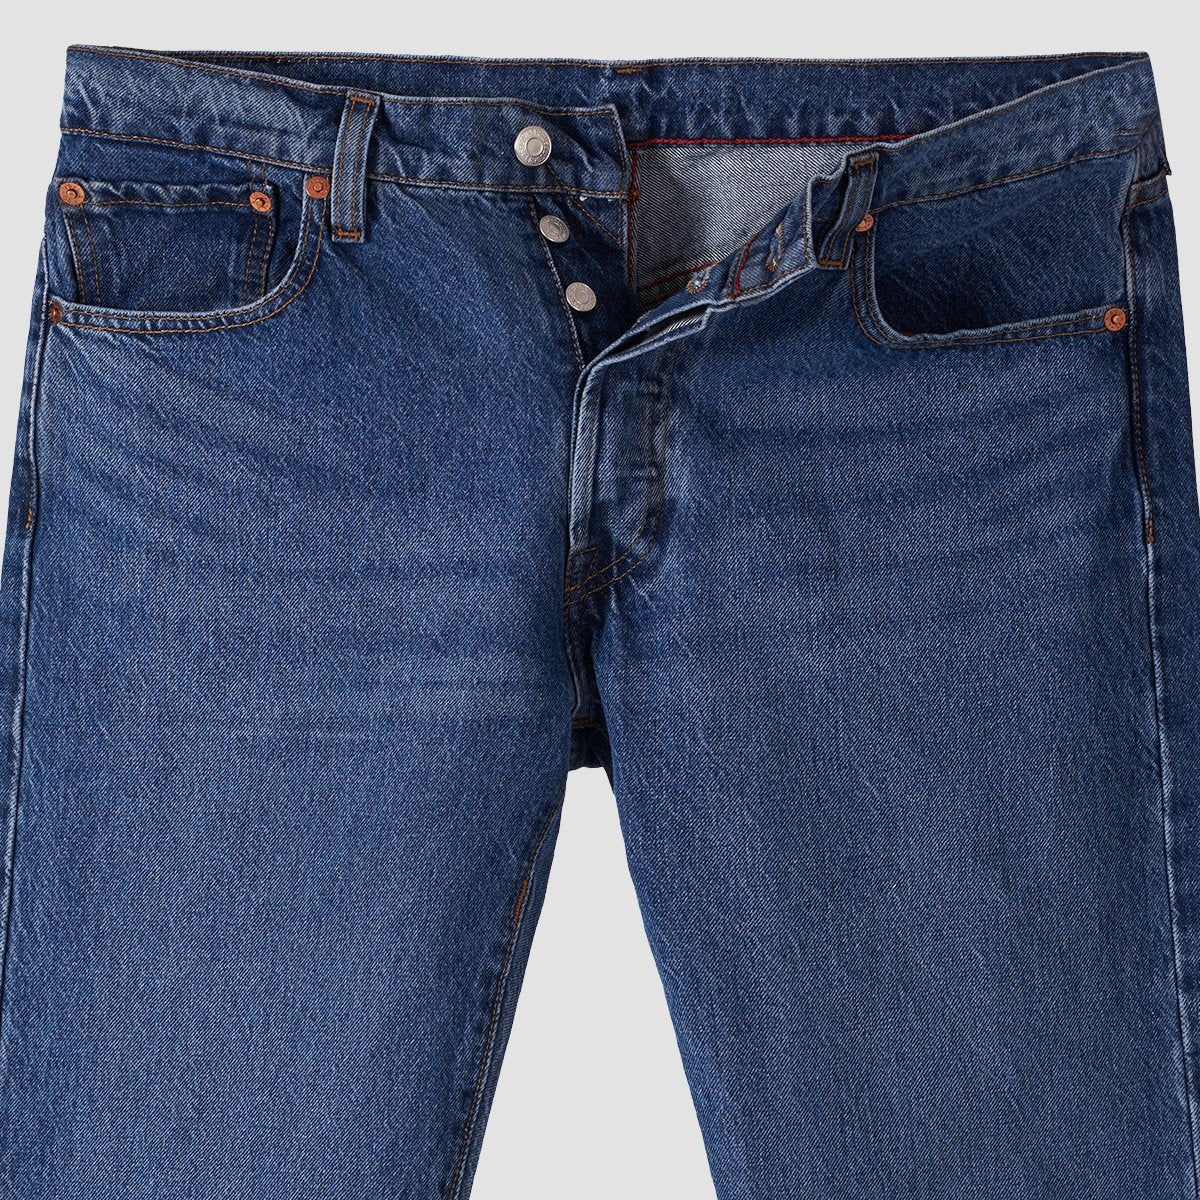 Levis Skate 501 Original Jeans STF Willow - Clothing